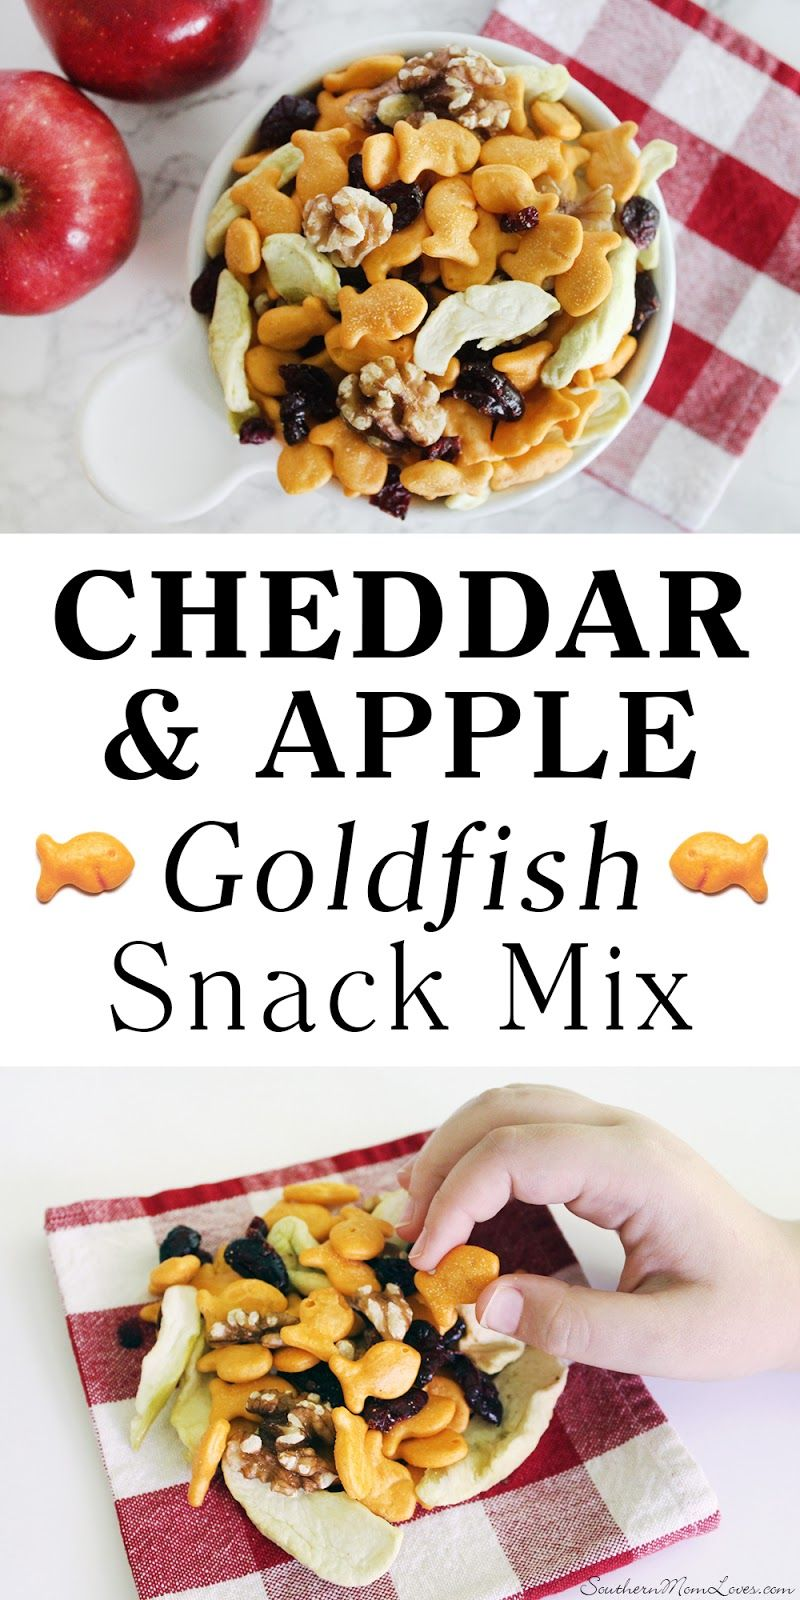 Cheddar and Apple Goldfish Snack Mix Recipe  It's what we